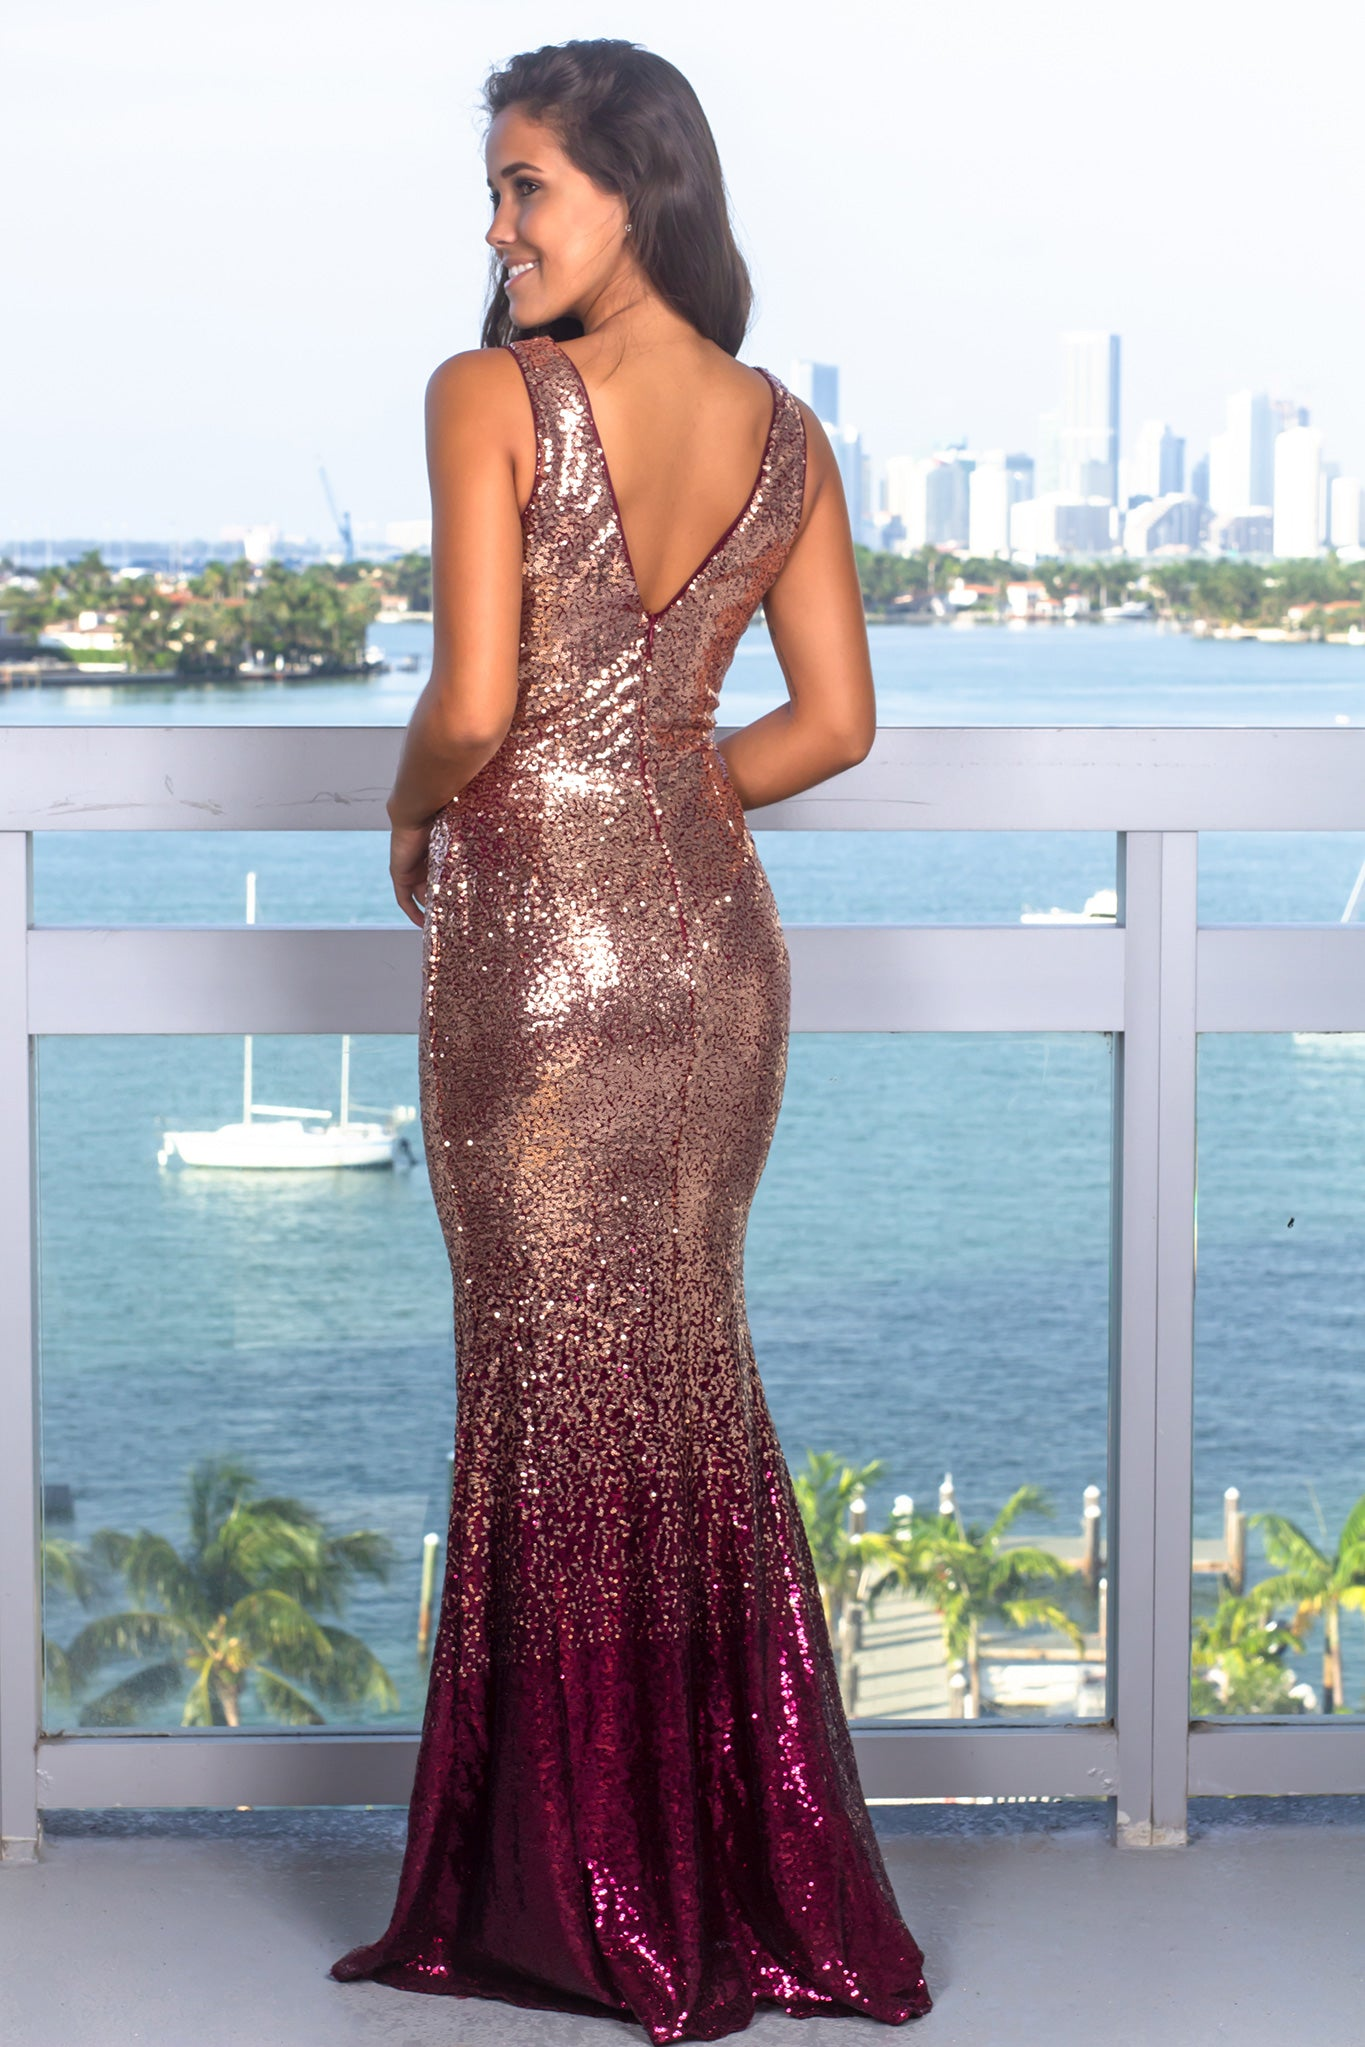 Rose Gold and Burgundy Sequin Maxi Dress